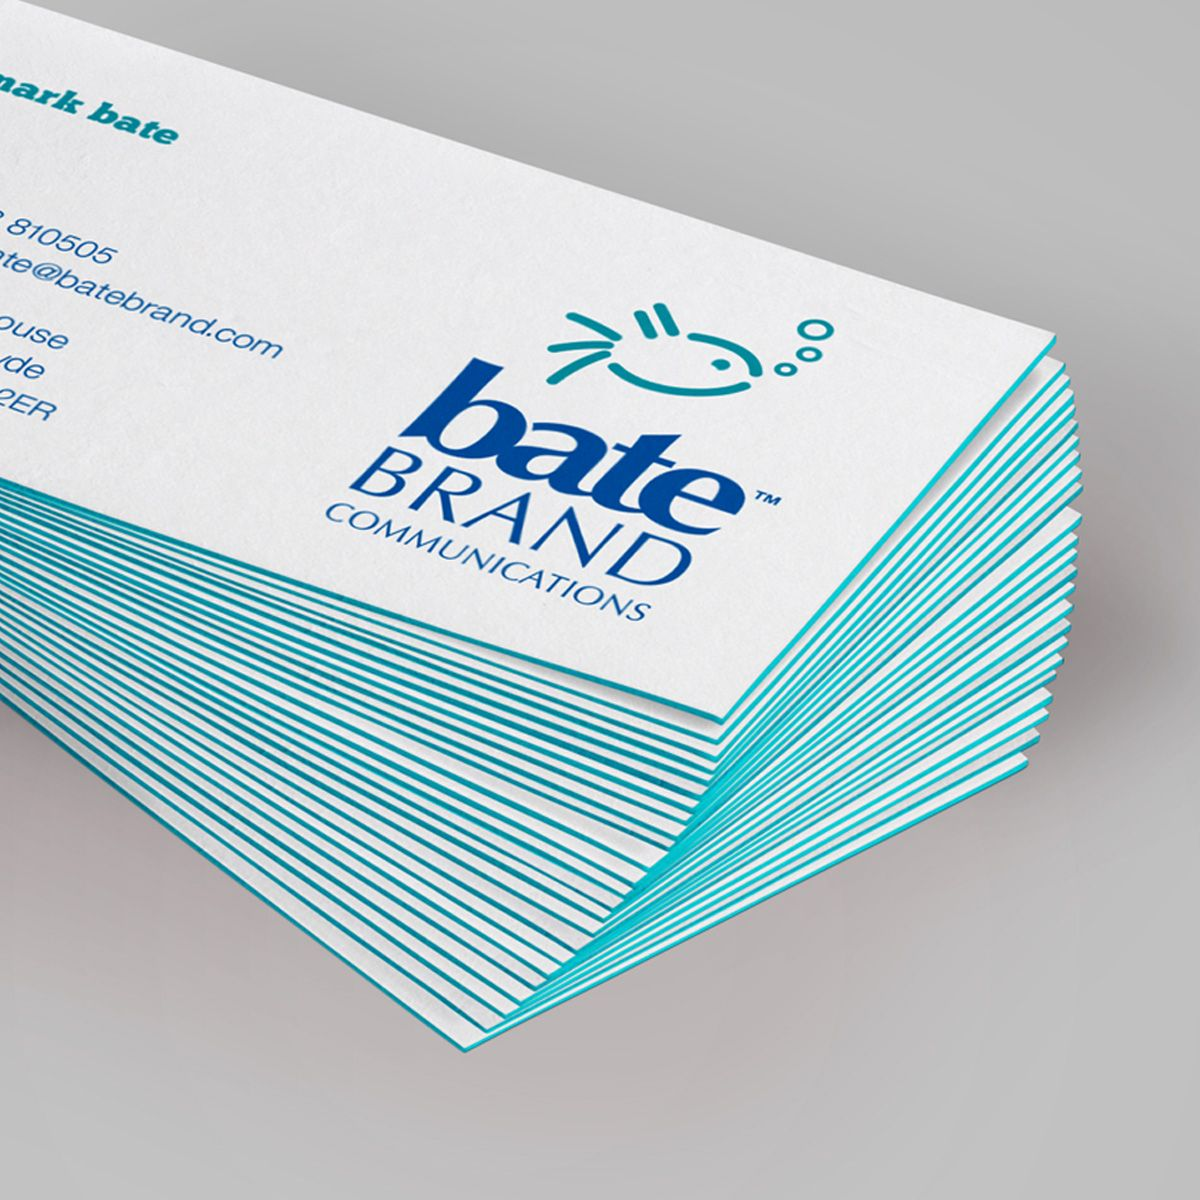 Our new business cards featuring triple layered colour sandwich our new business cards featuring triple layered colour sandwich paper at a hefty 600gsm these cards will sell your business and break a window if you colourmoves